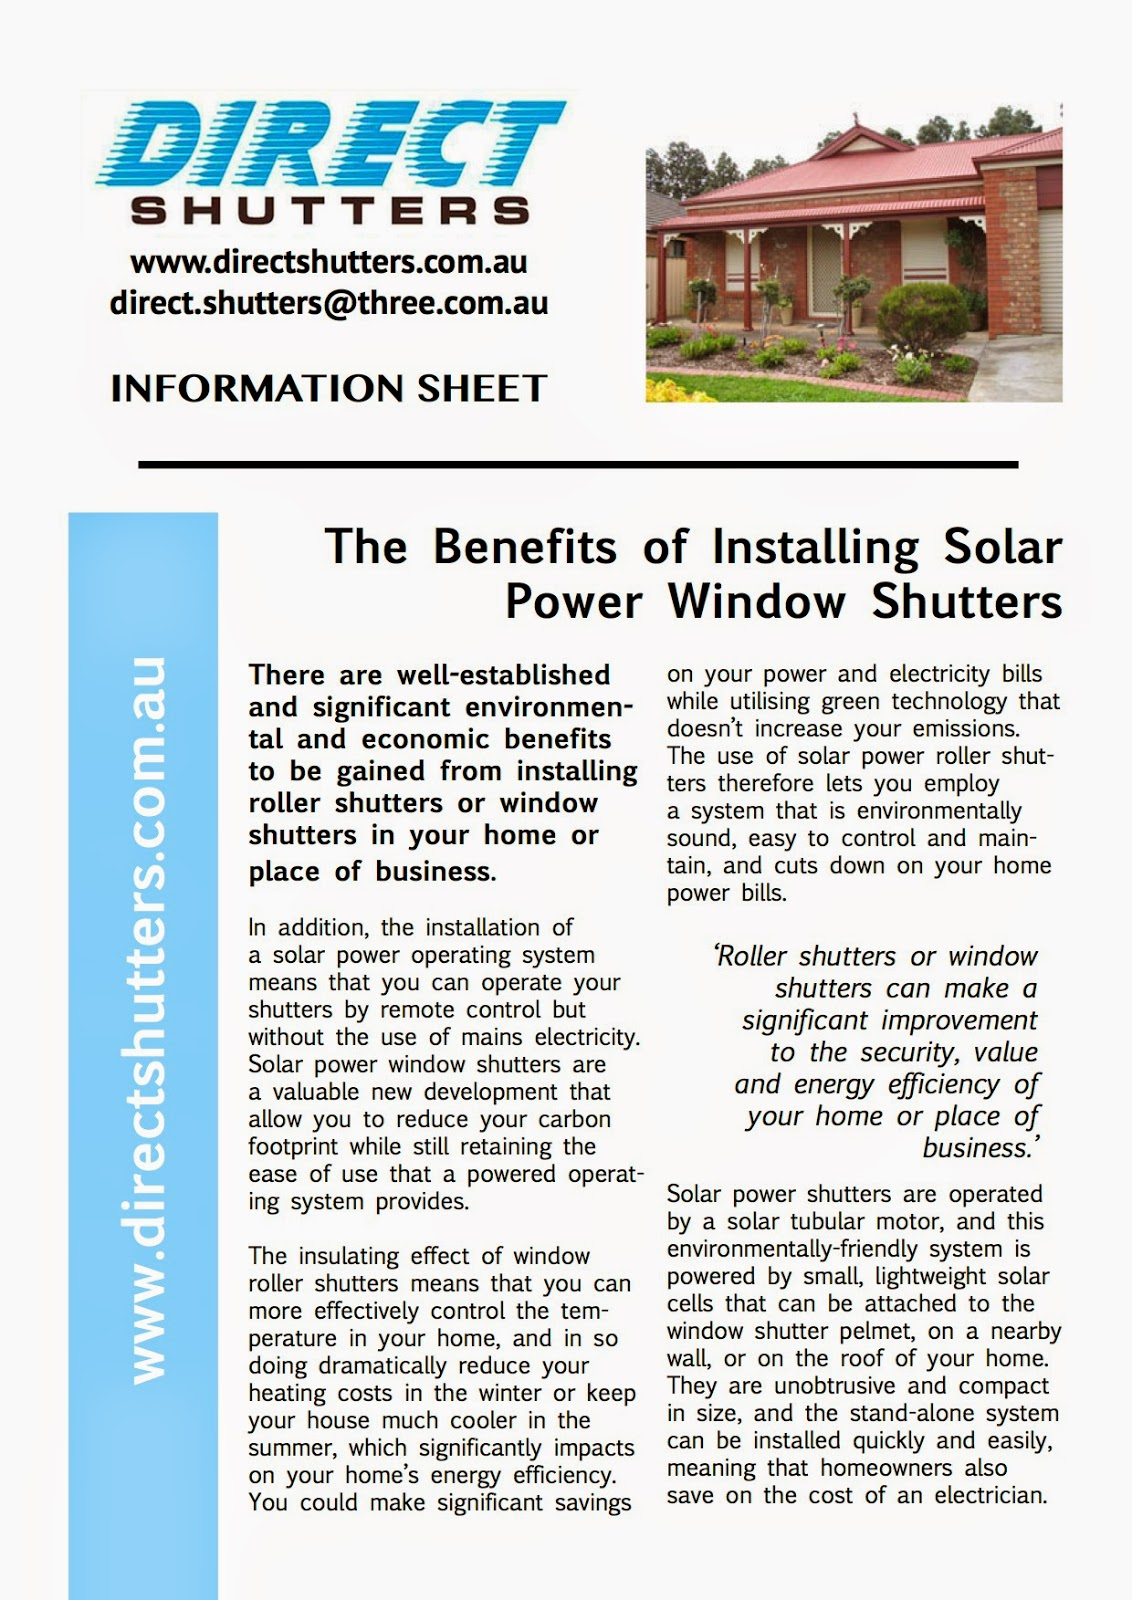 Solar power roller shutters are environmentally sound, easy to control and maintain, and cut down on home power bills